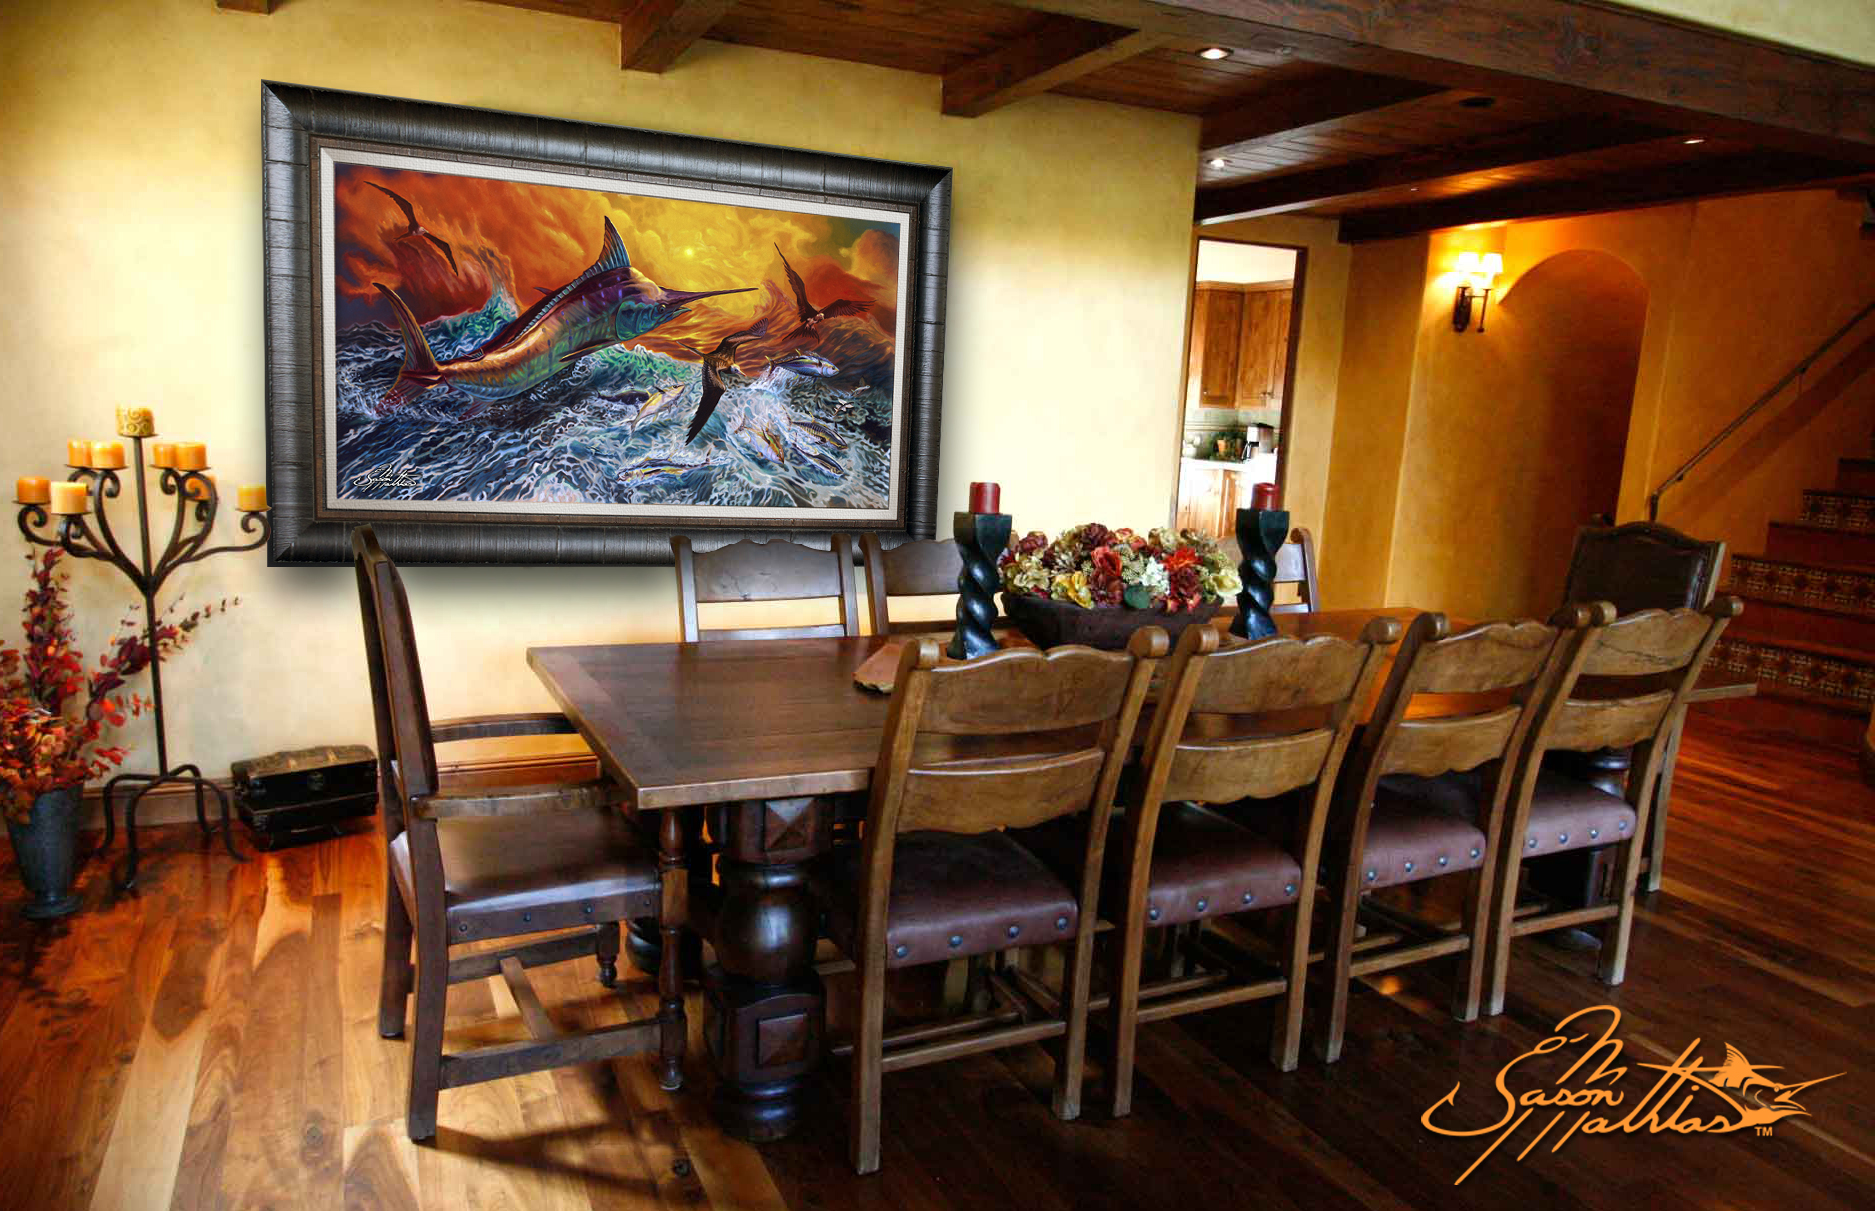 jason-mathias-interior-design-blue-marlin-art-painting-print-ideas-fishing-nautical.jpg